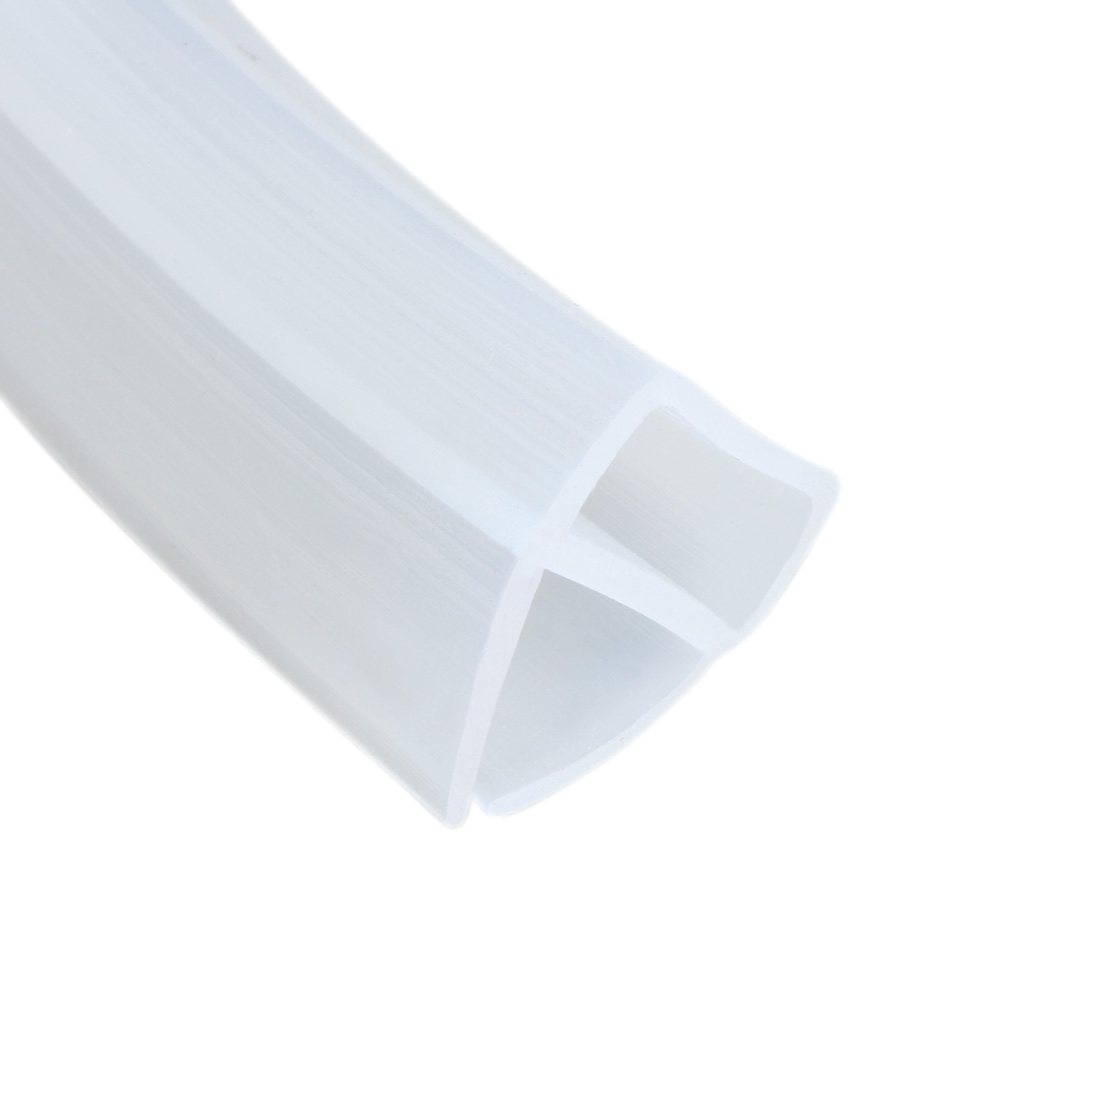 39-inch U Shaped Frameless Window Shower Door Seal Clear for 15/32-inch Glass